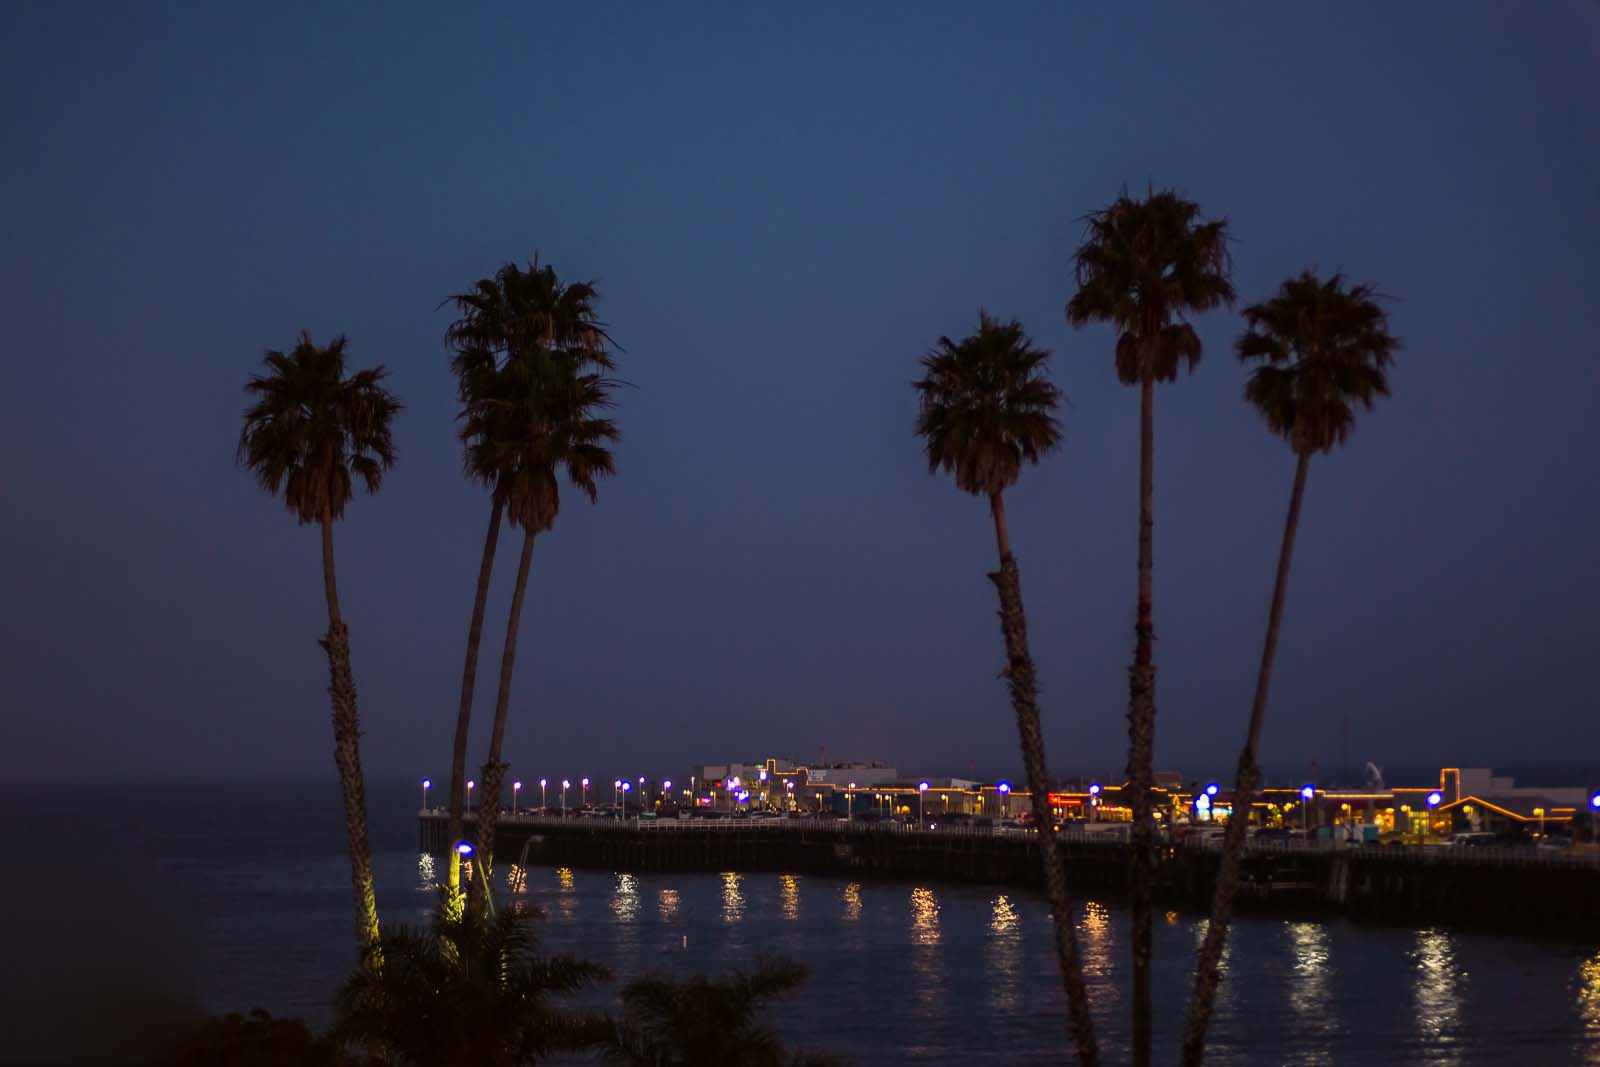 Night photo of palm silhouettes against city lights on an island